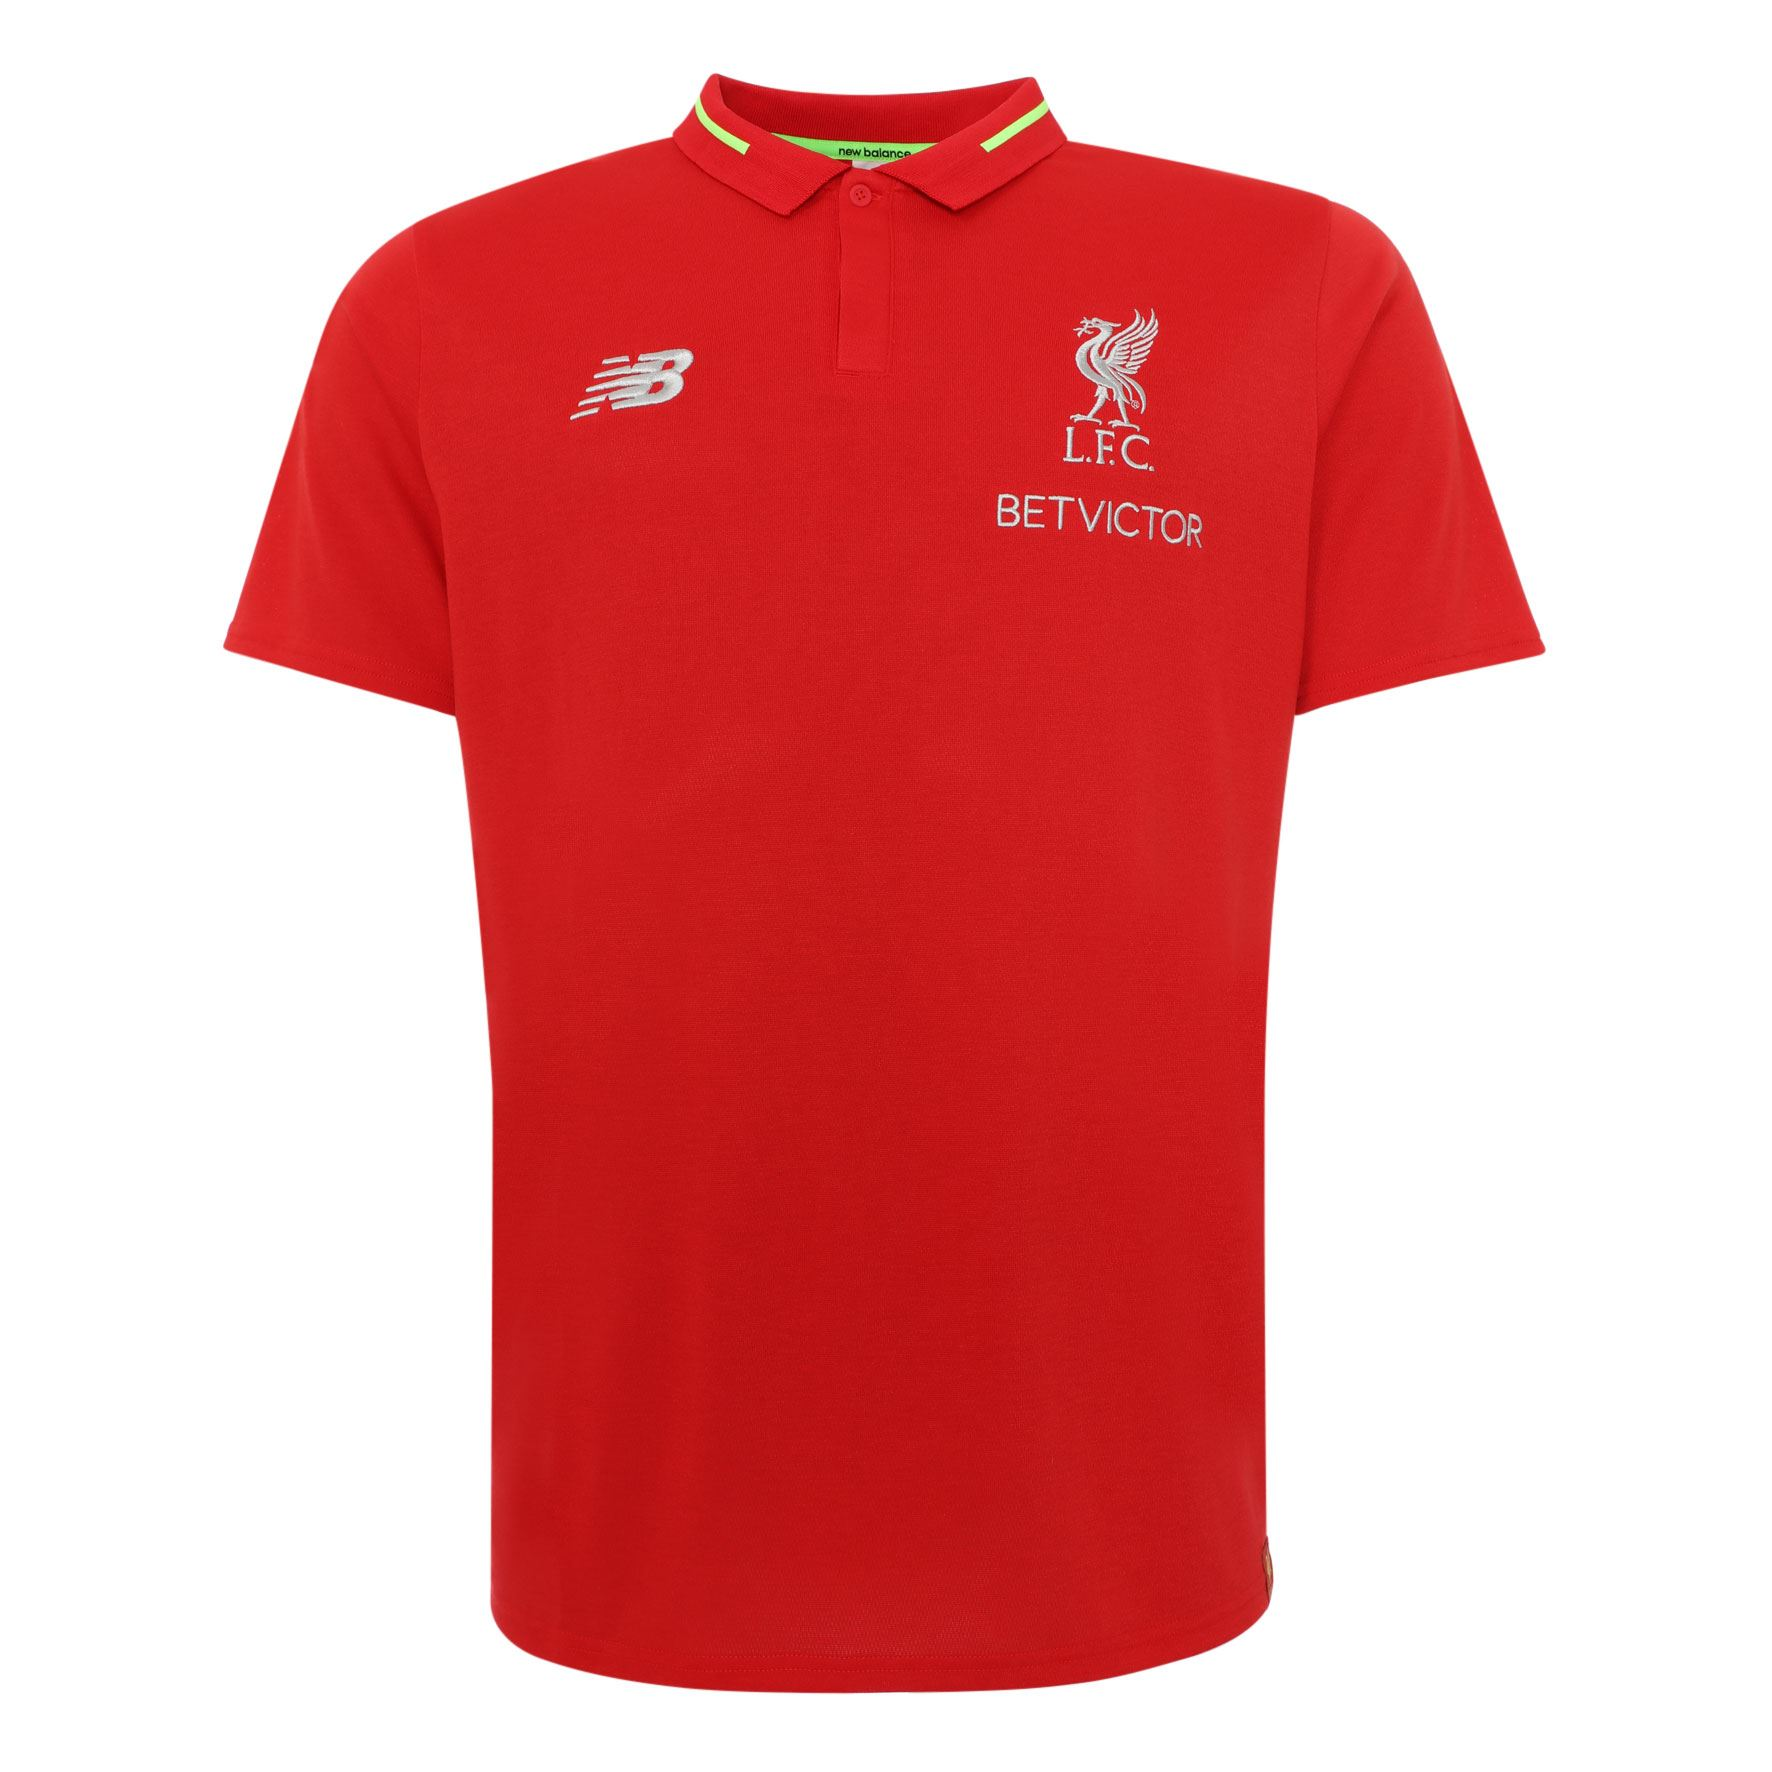 73e4079f4 Details about Liverpool FC Red Mens Soccer Polo Jersey Leisure Essential  18 19 LFC Official